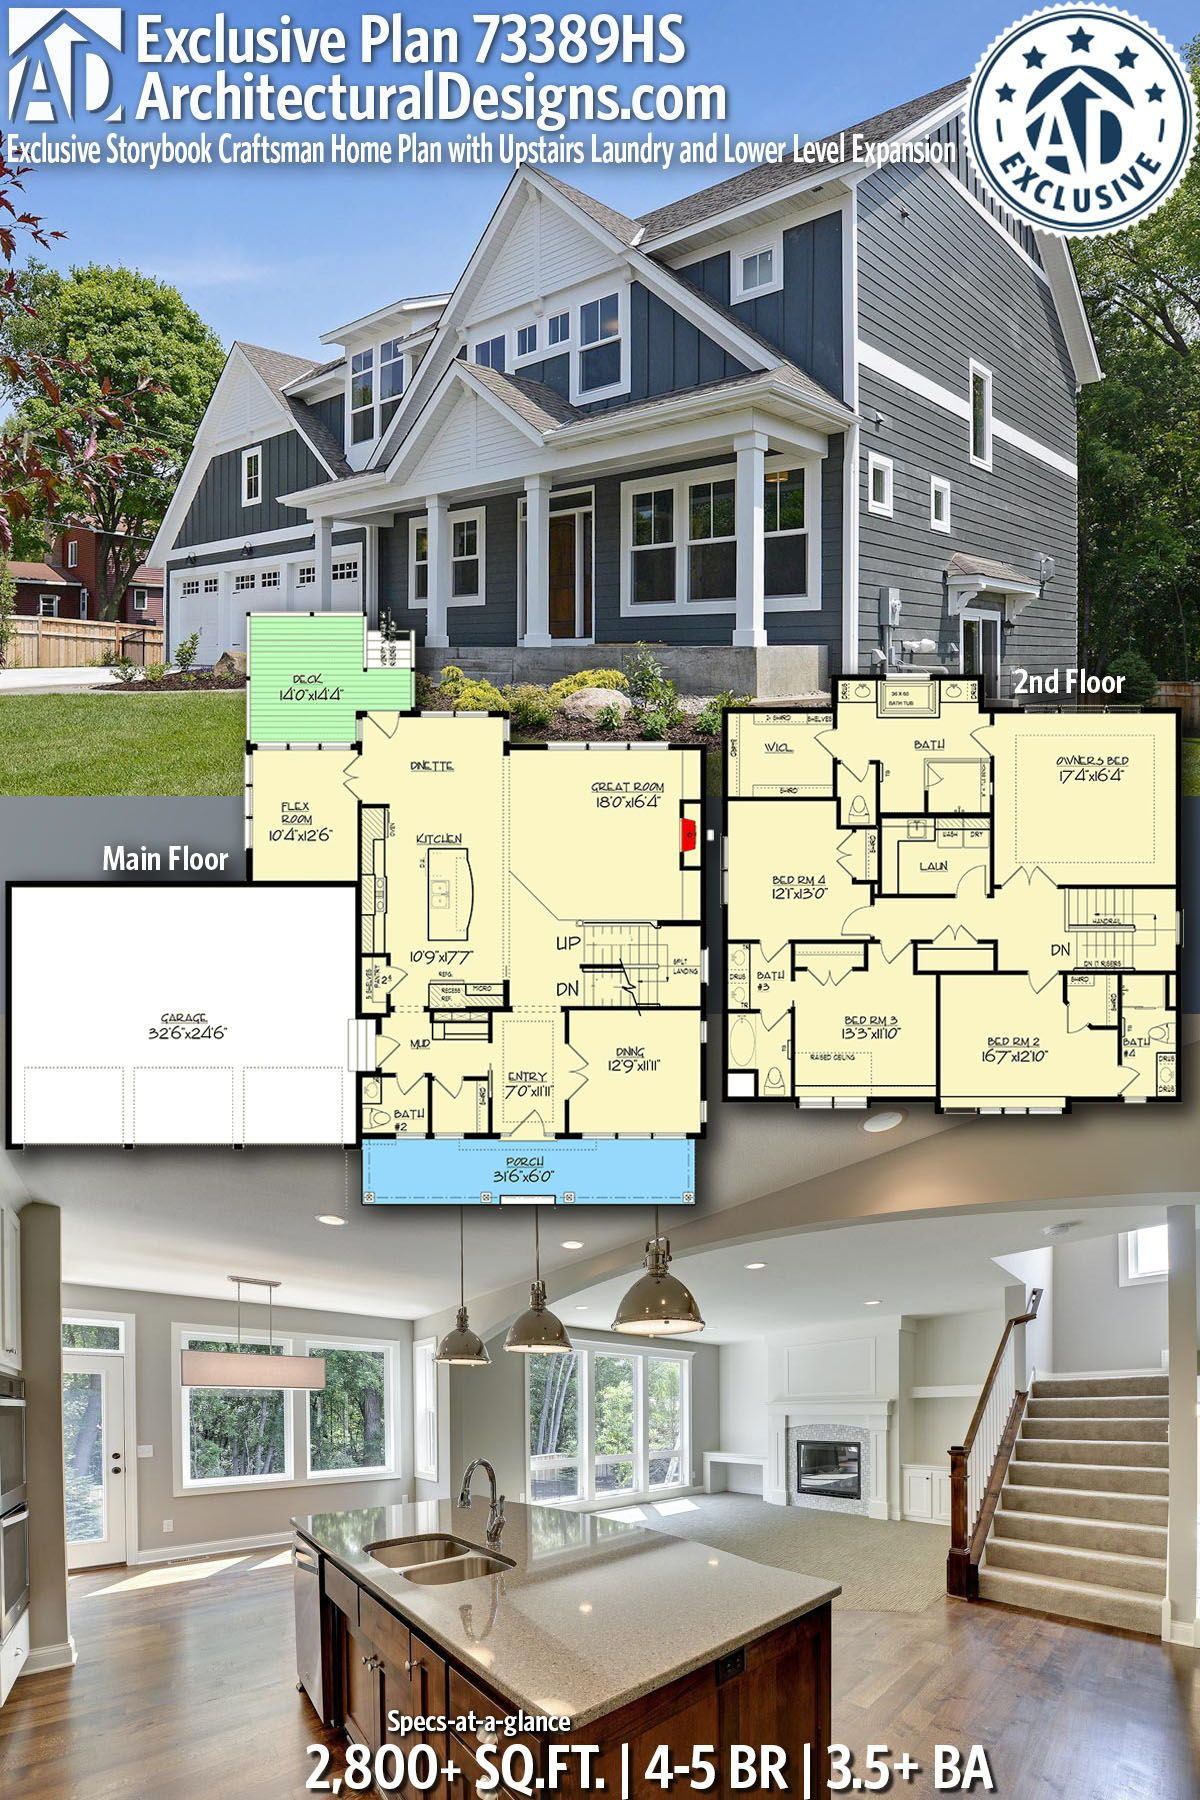 Architectural designs exclusive home plan 73389hs gives you 4 5 bedrooms 3 5 baths and 2800 sq ft with an optional lower level ready when you are